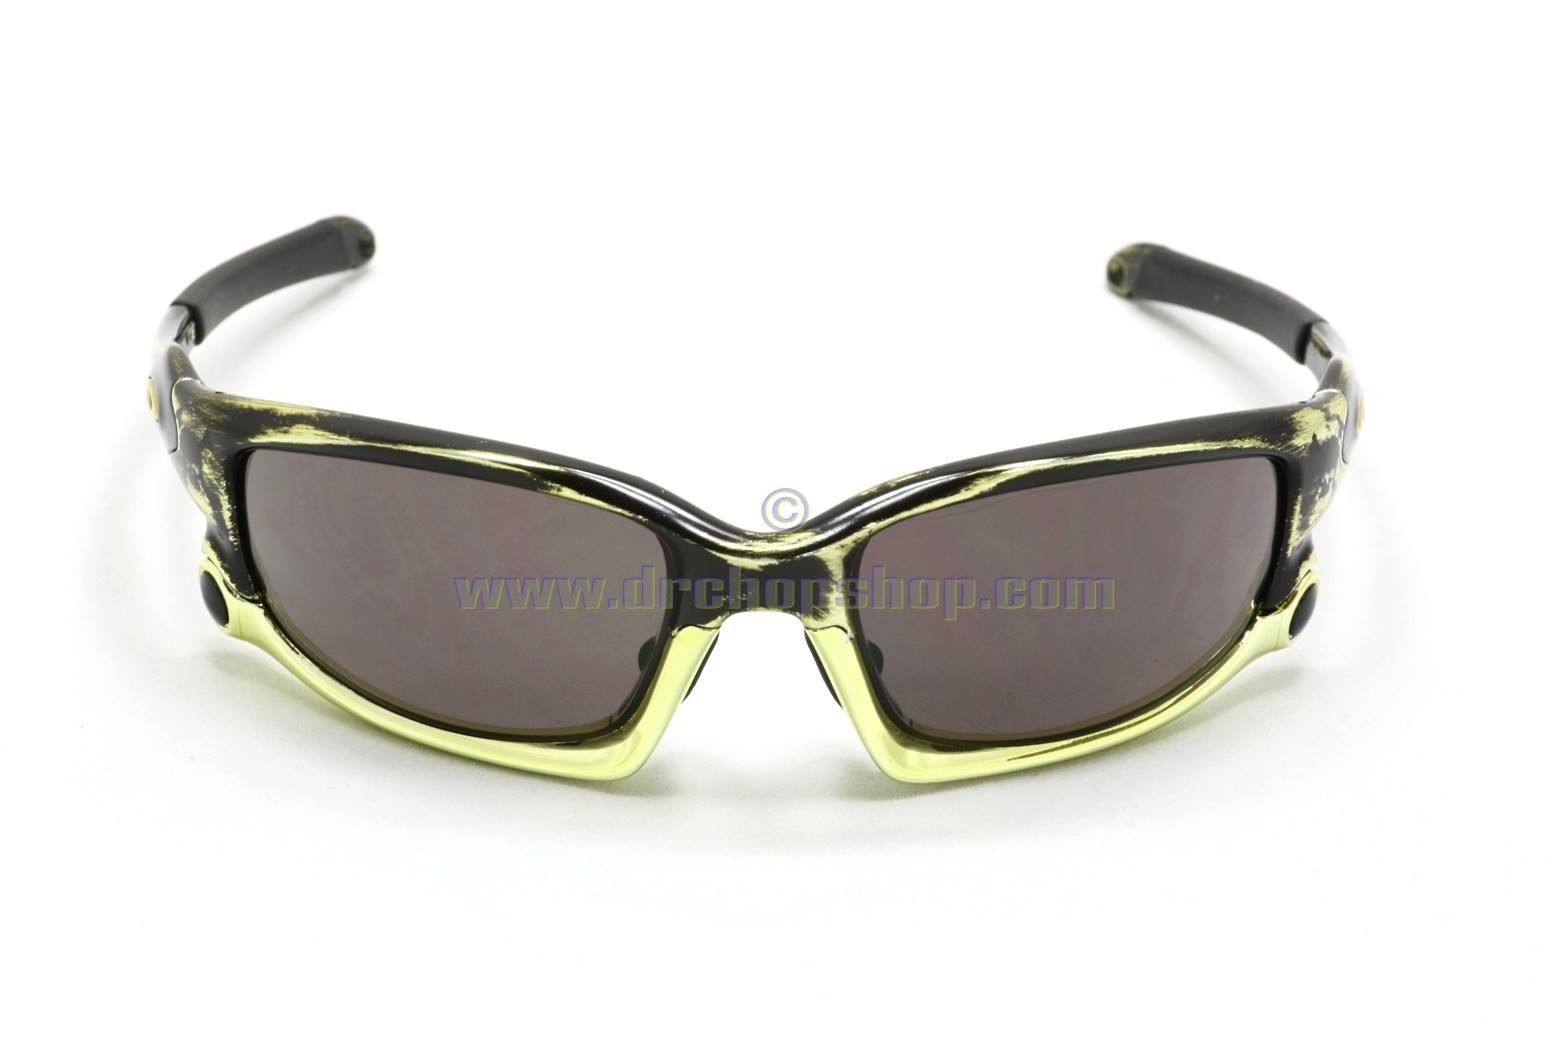 Frogskins, Racing Jacket, Hijinx, & More Customs - 1149124_660747327270290_1460109712_o.jpg